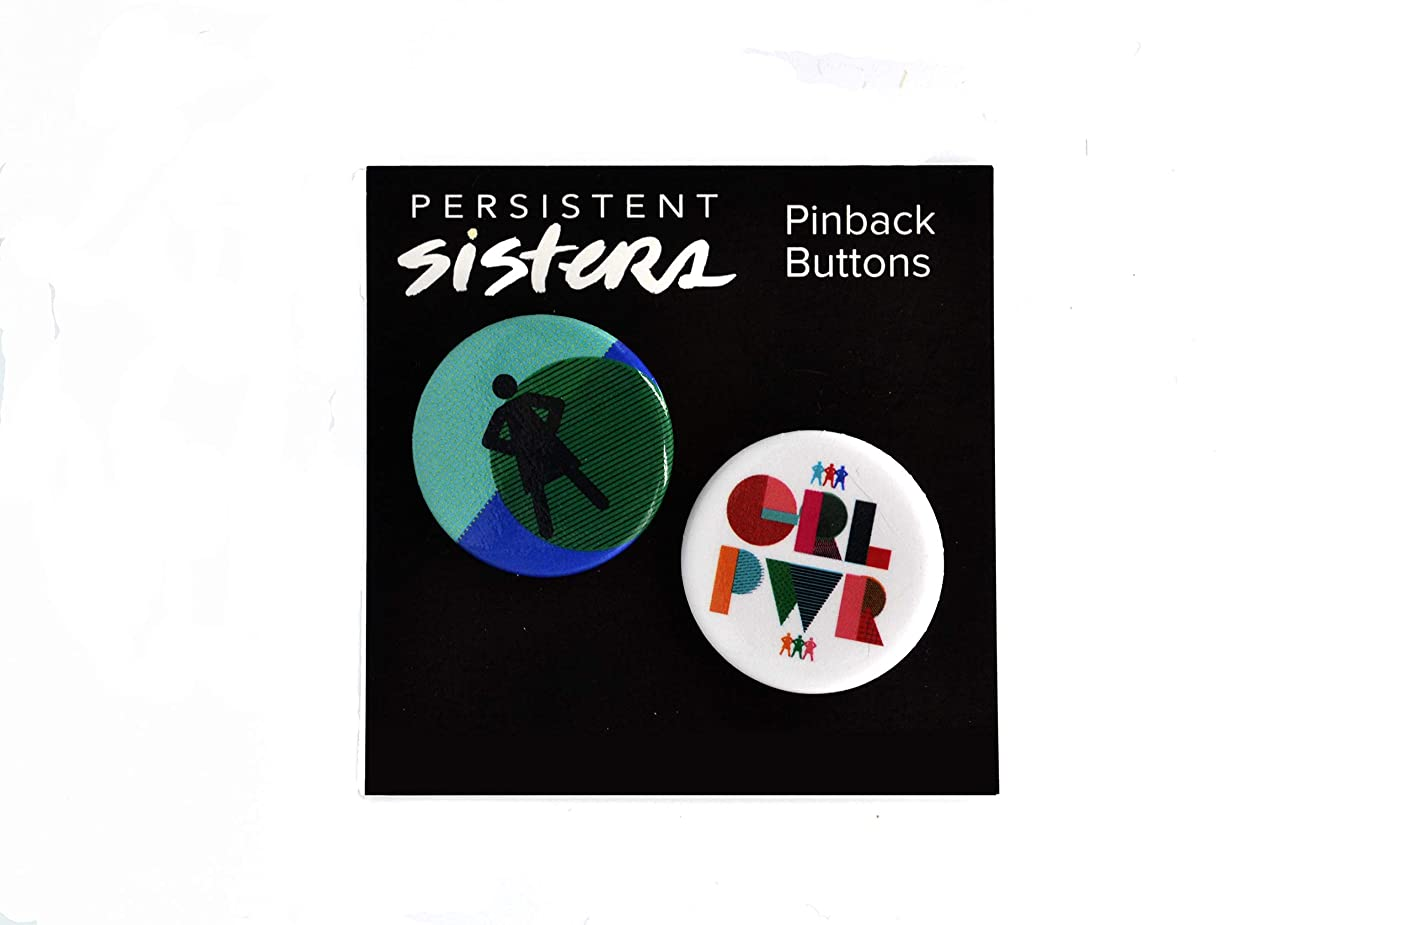 Persistent Sisters Buttons, Powerful Woman, Girl Power Logos, Pushback Pins, 2-Pack, Set of 6